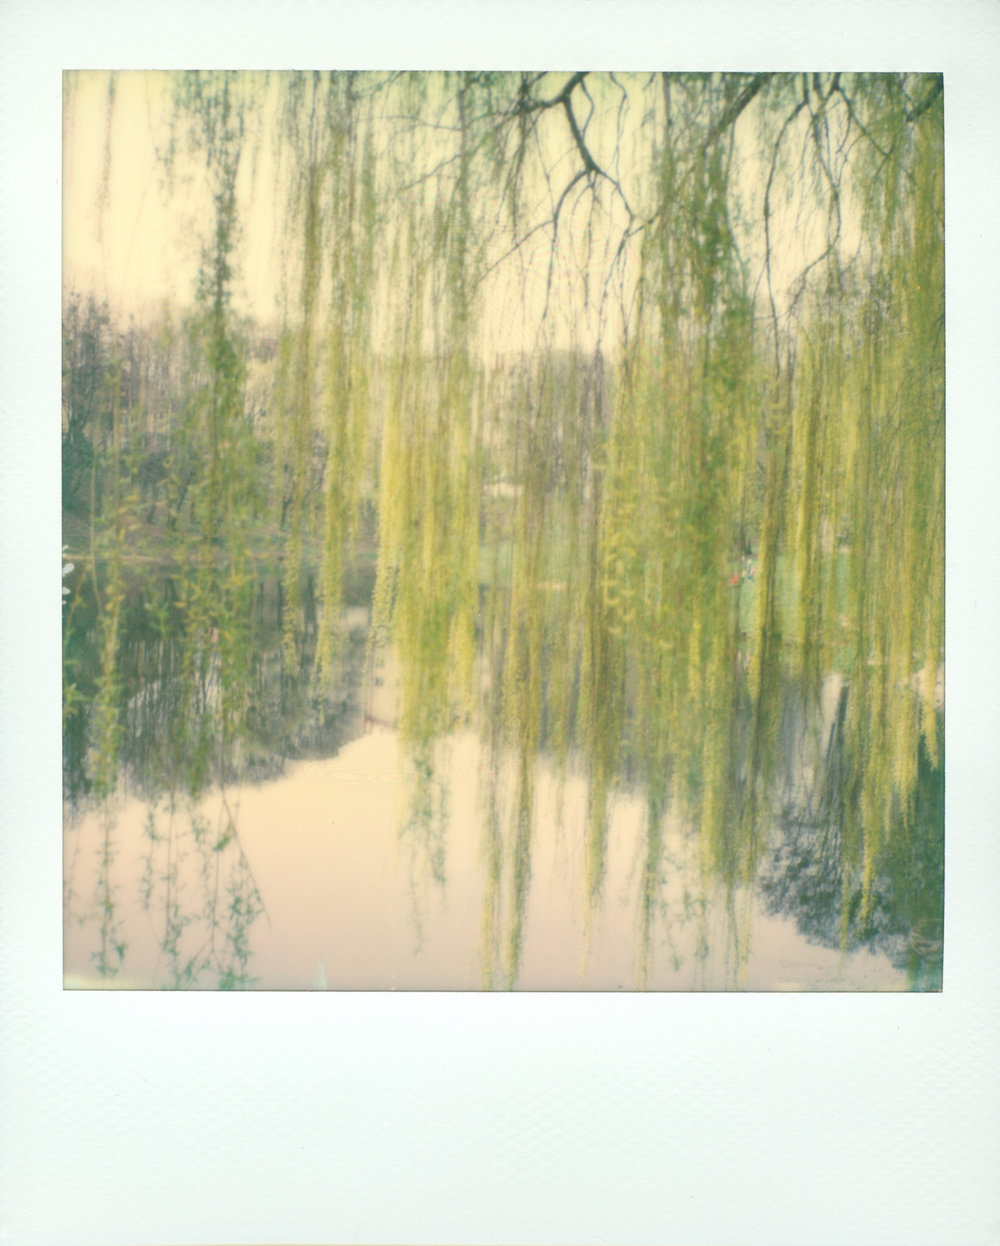 Weeping Willow | Polaroid SX70 | Impossible Project 70 Color | Noah Zyla